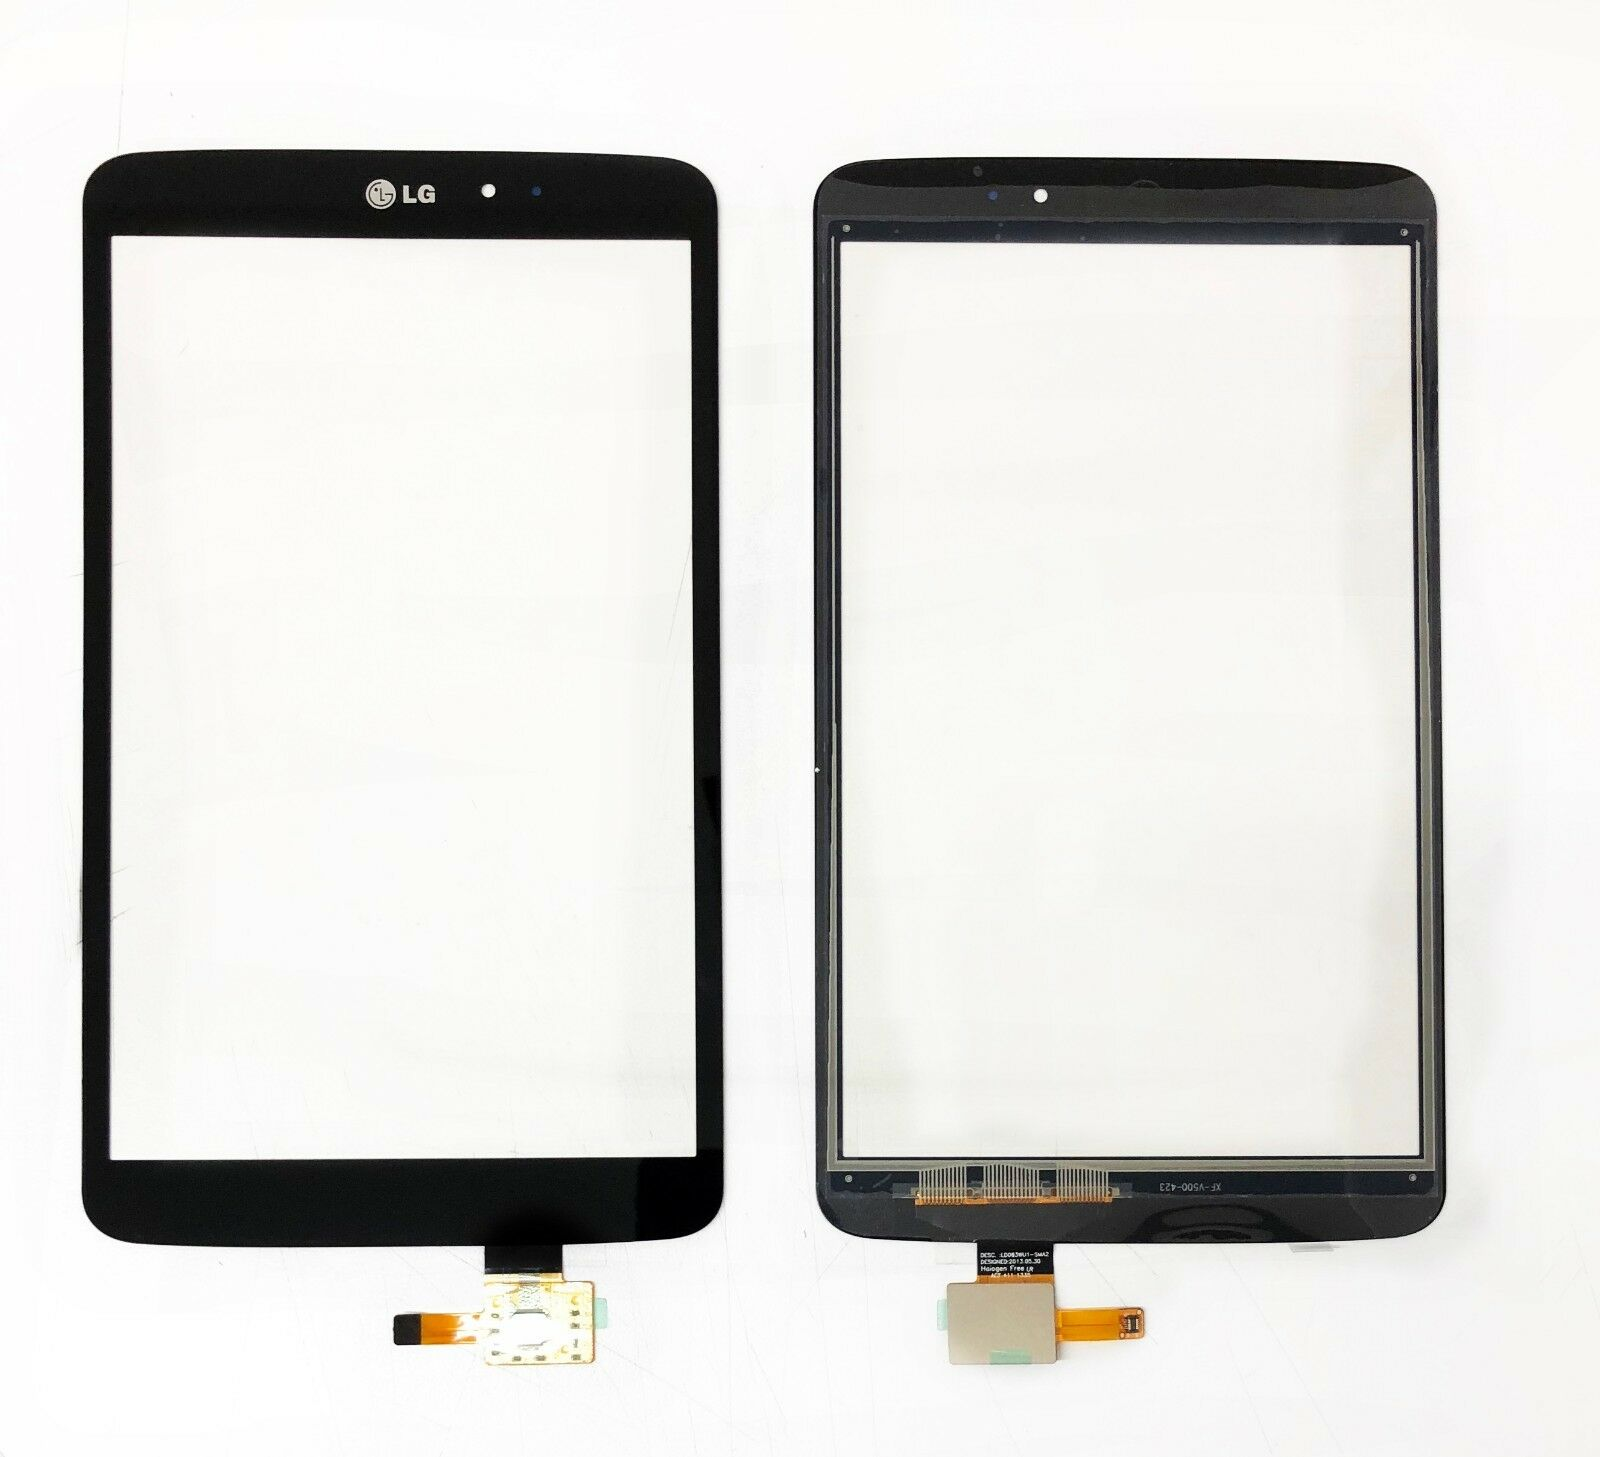 LPPLY NEW For <font><b>LG</b></font> G Pad 8.3 <font><b>V500</b></font> V507 Tablet <font><b>Touch</b></font> <font><b>Screen</b></font> Digitizer Front Glass image